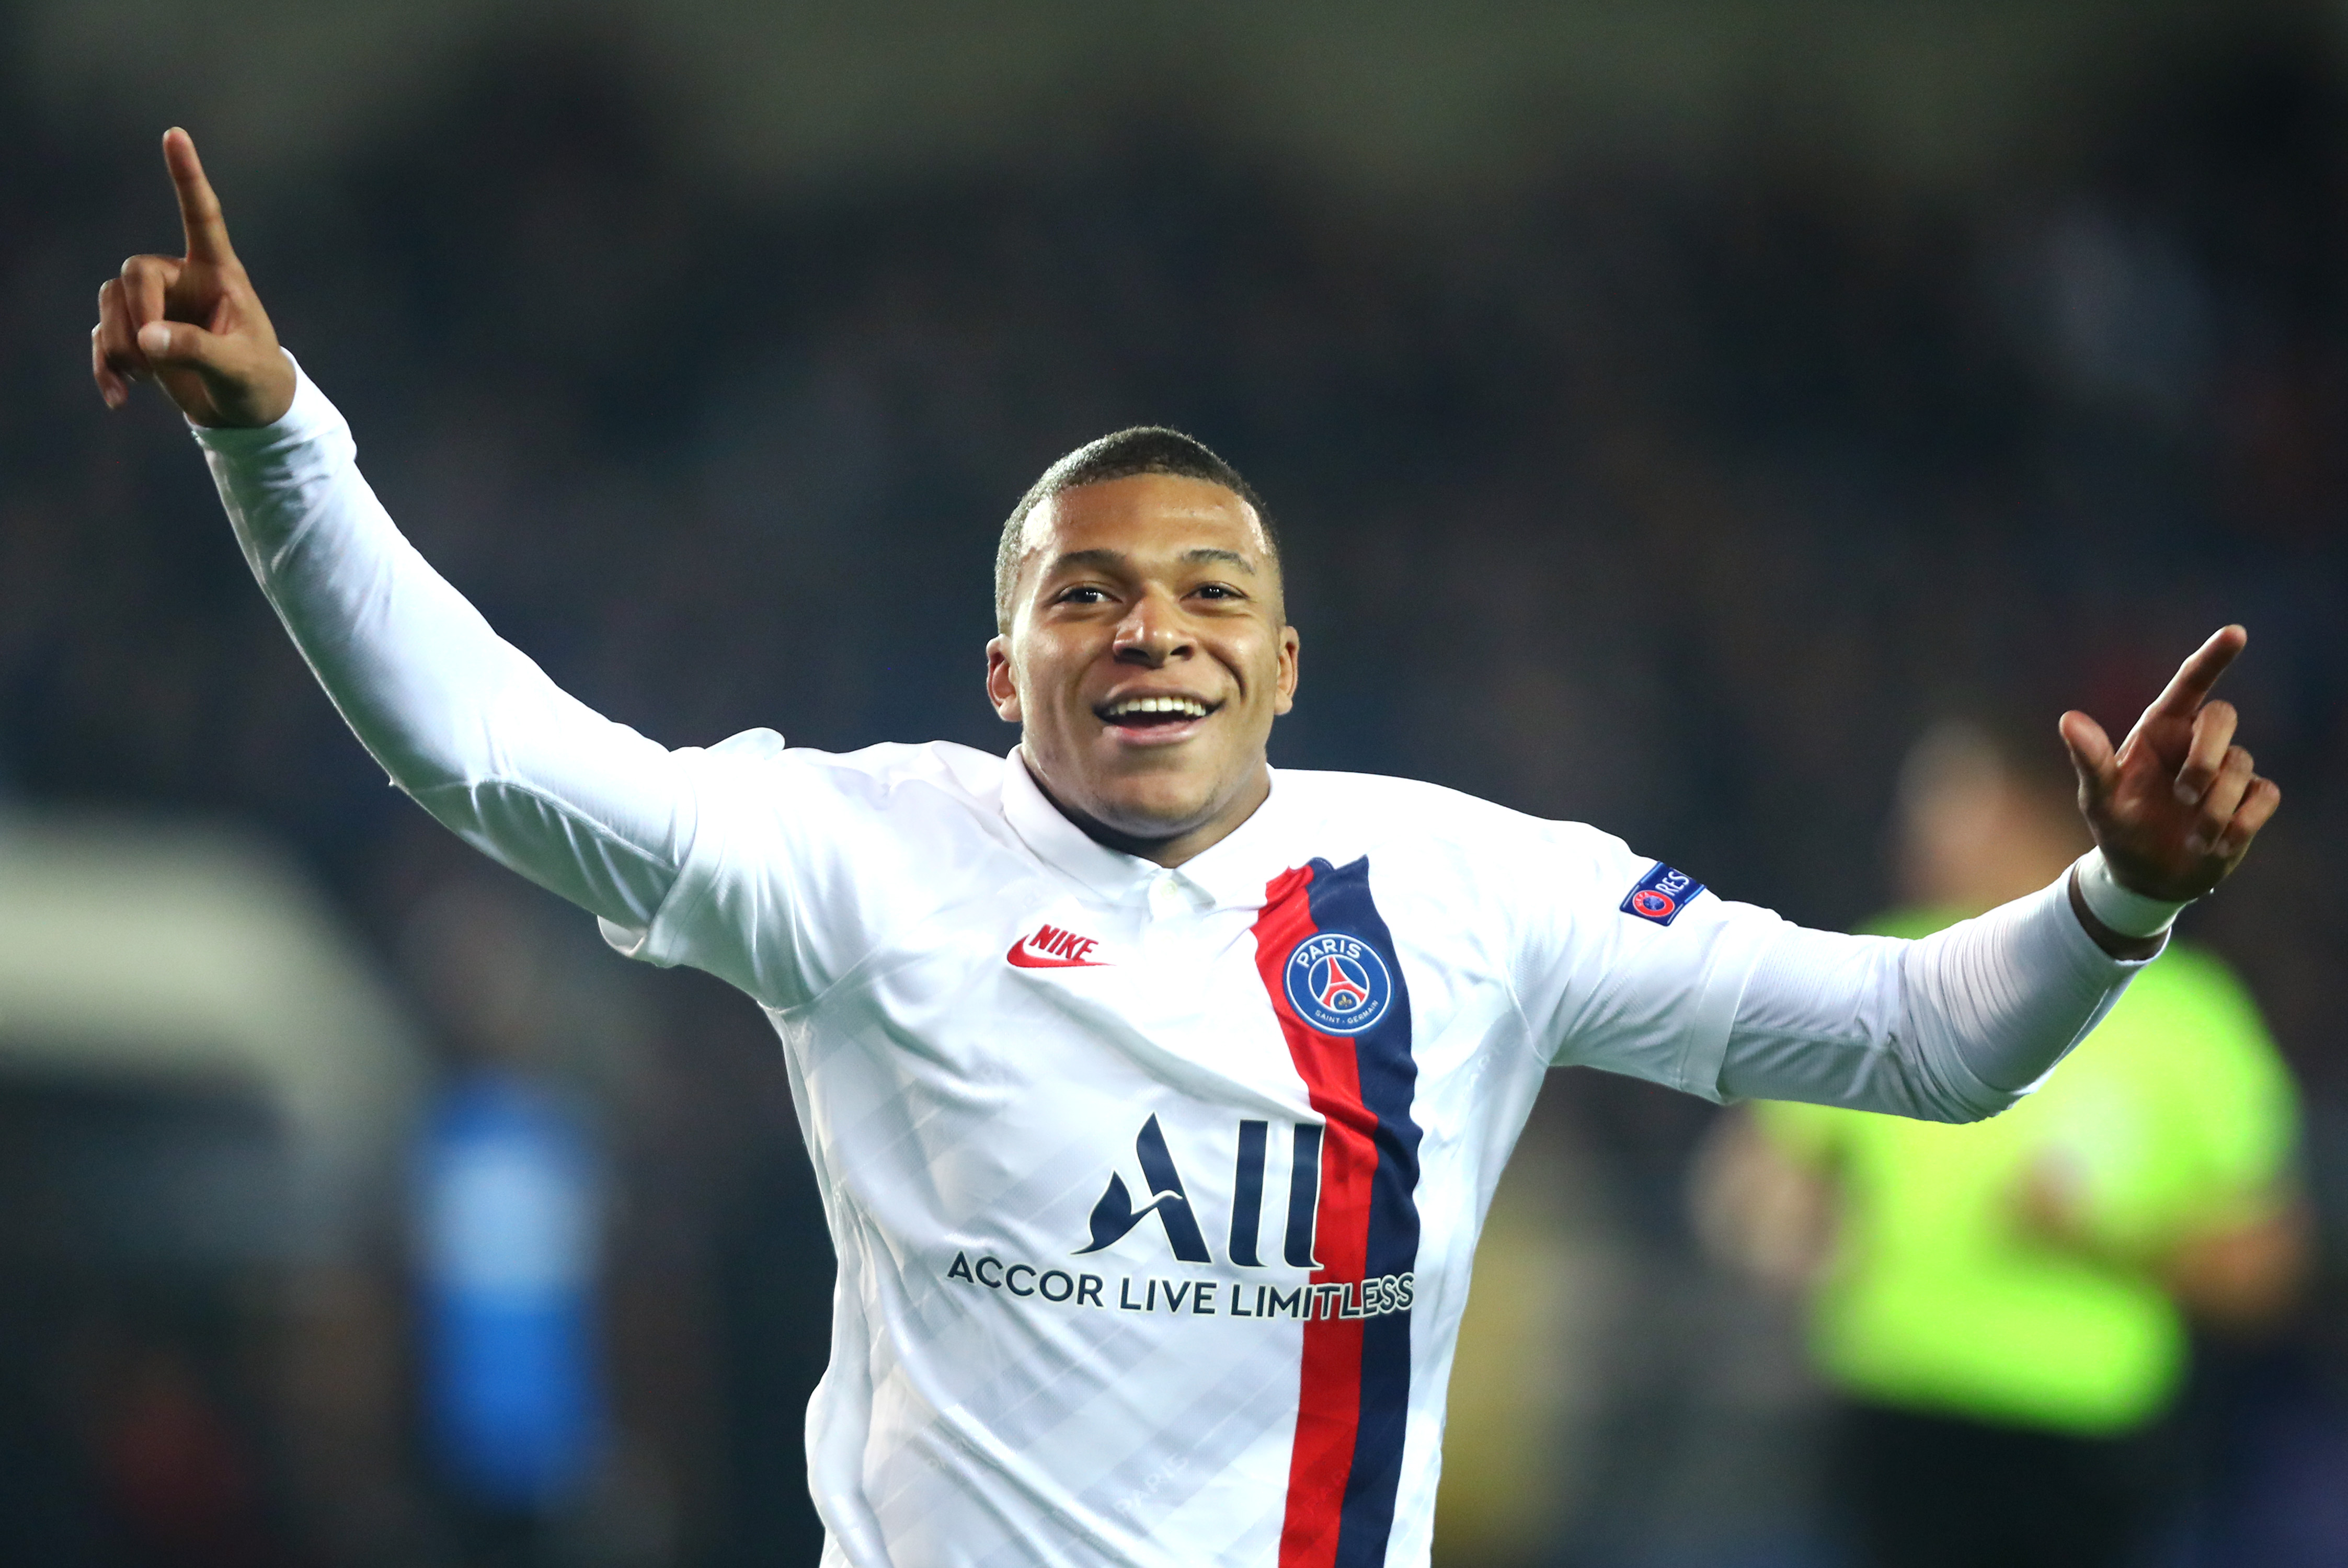 Kylian Mbappe scored three goals in 22 minutes as PSG thrashed Club Brugge 5-0 in Belgium.